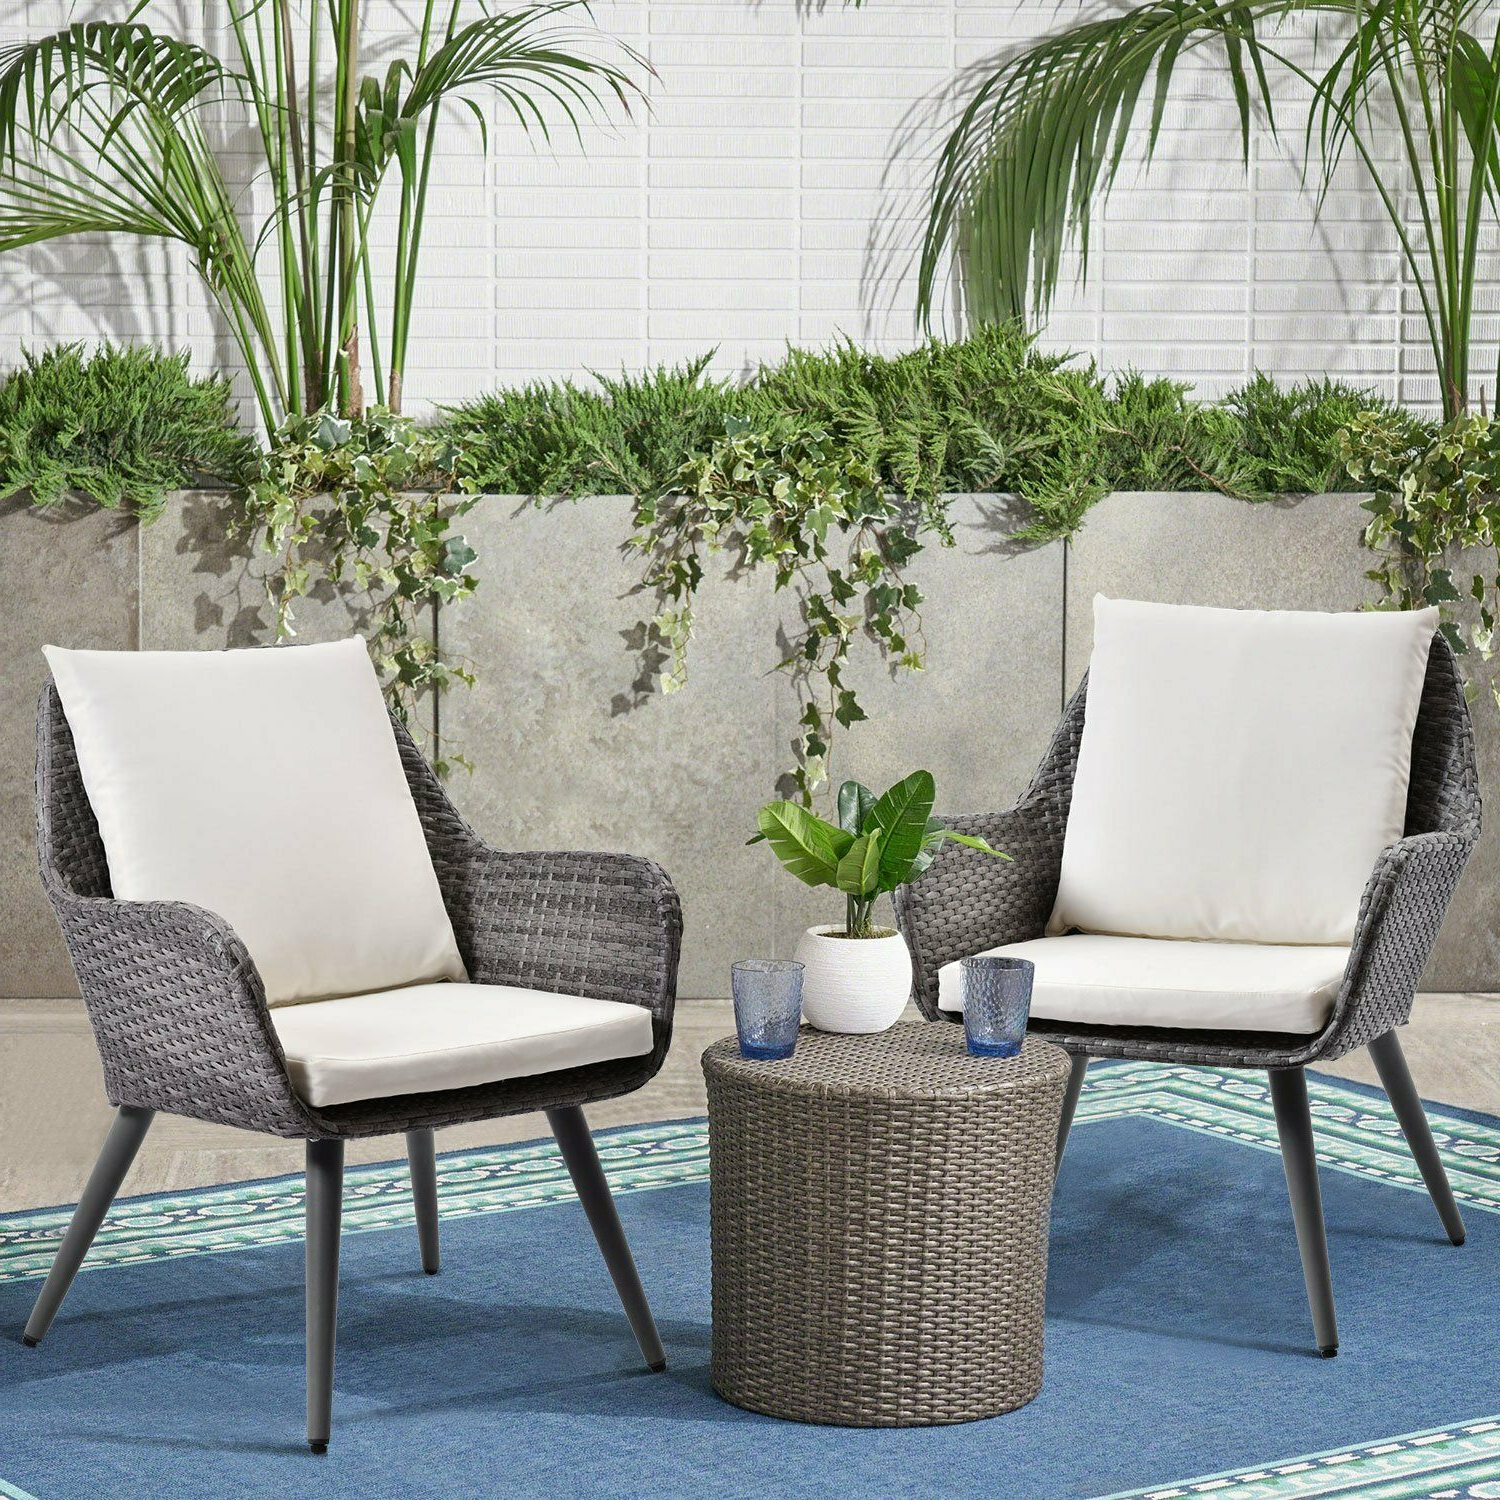 Well Liked Outdoor Wicker Dining Chair Pe Rattan Accent Chair With Cushion Patio  Furniture Intended For Outdoor Rustic Acacia Wood Chaise Lounges With Wicker Seat (Gallery 25 of 25)